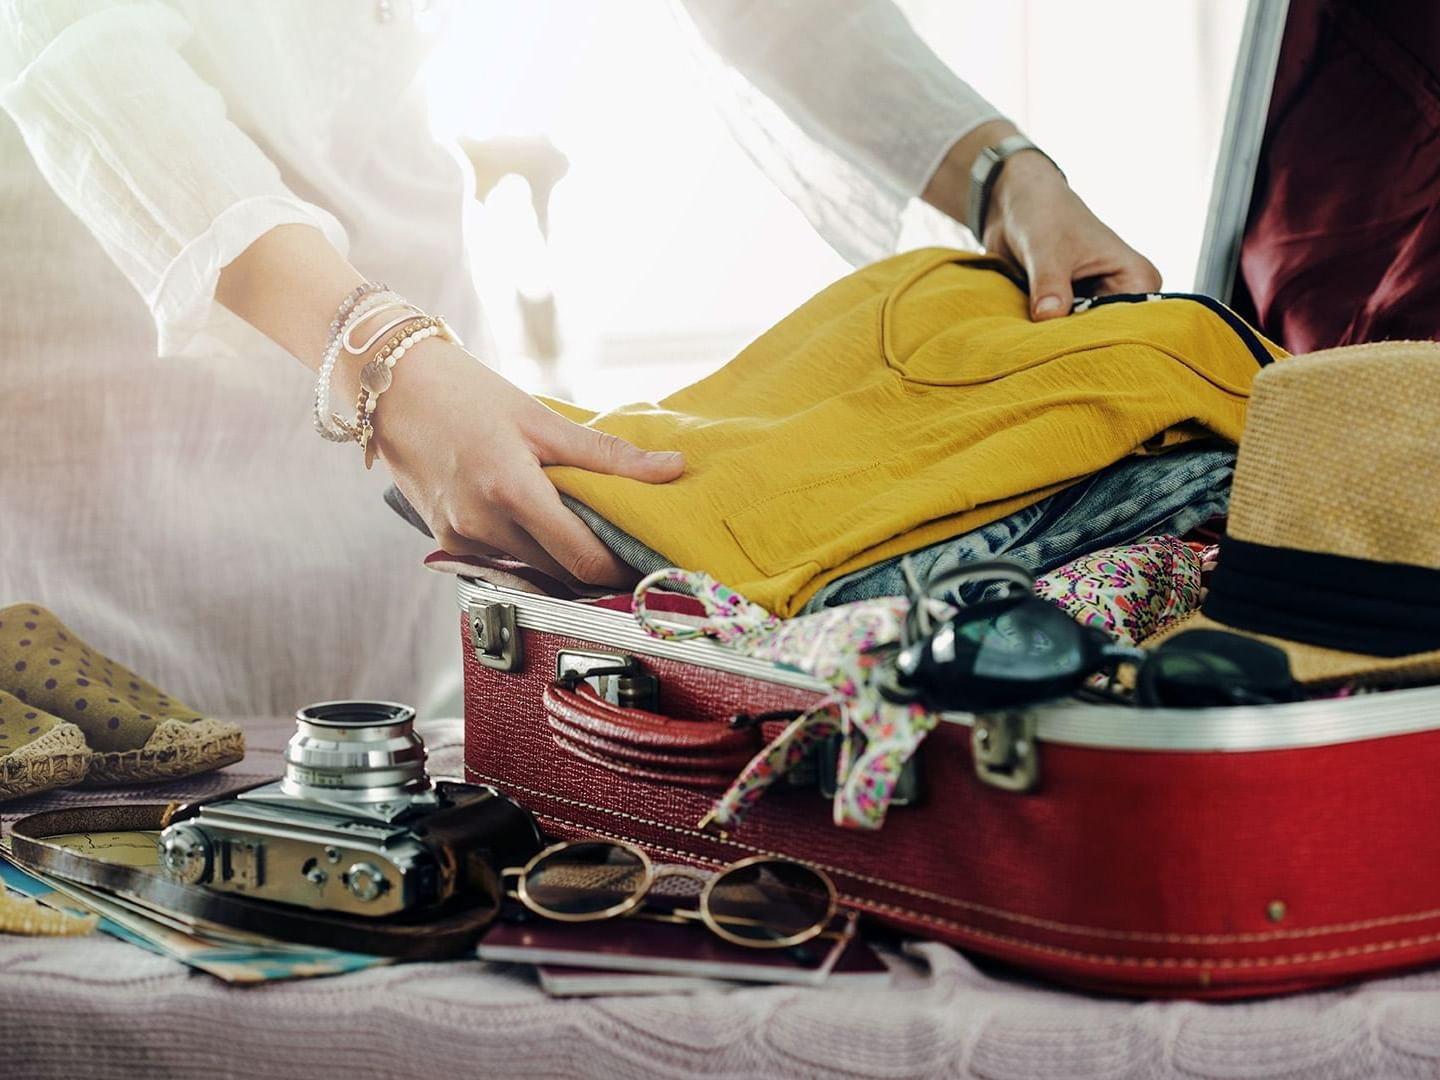 A closeup picture of a woman packing a suitcase